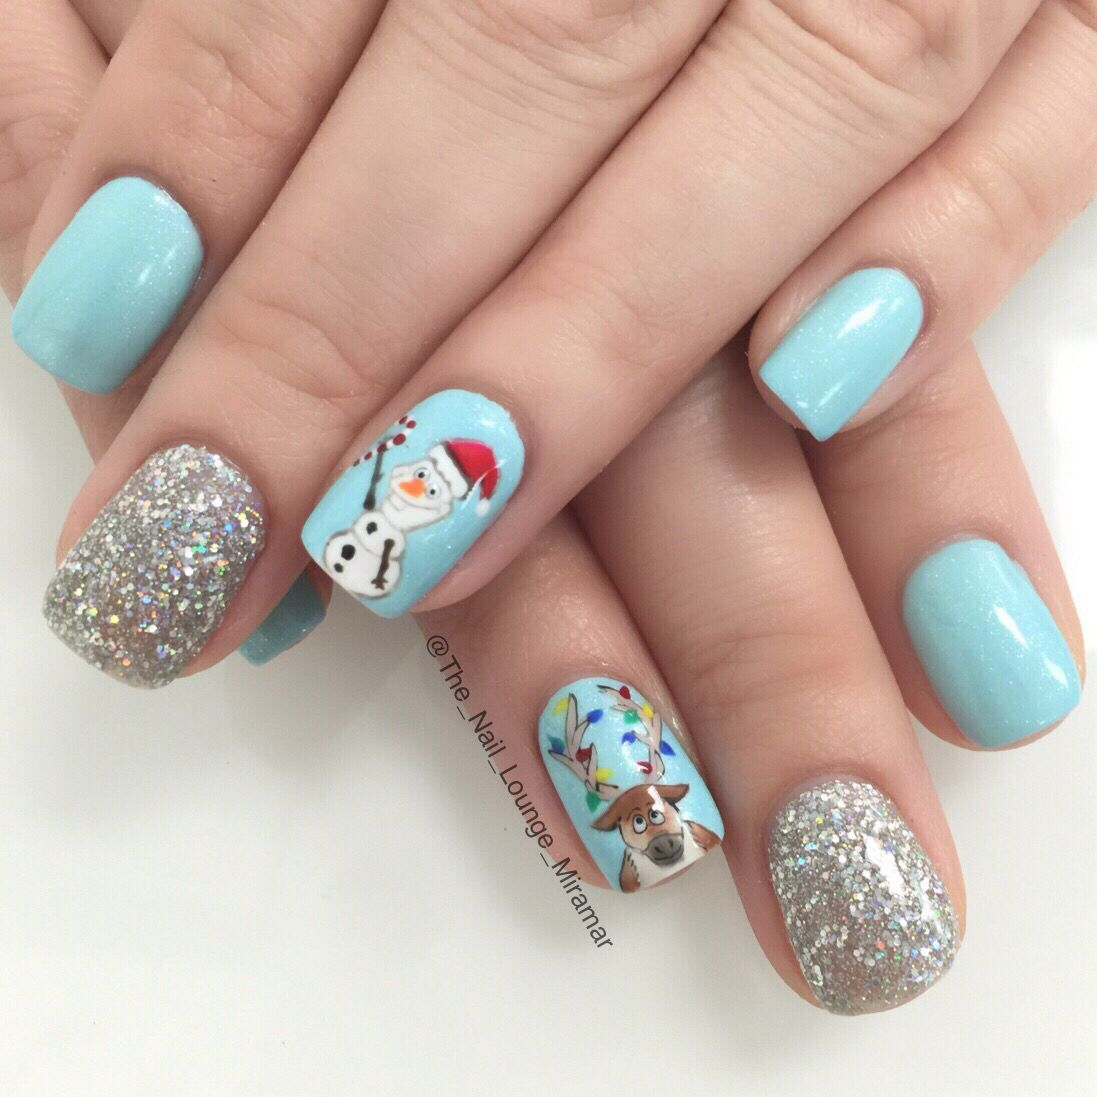 disneys frozen olaf christmas inspired nail art design - Disney Christmas Nails